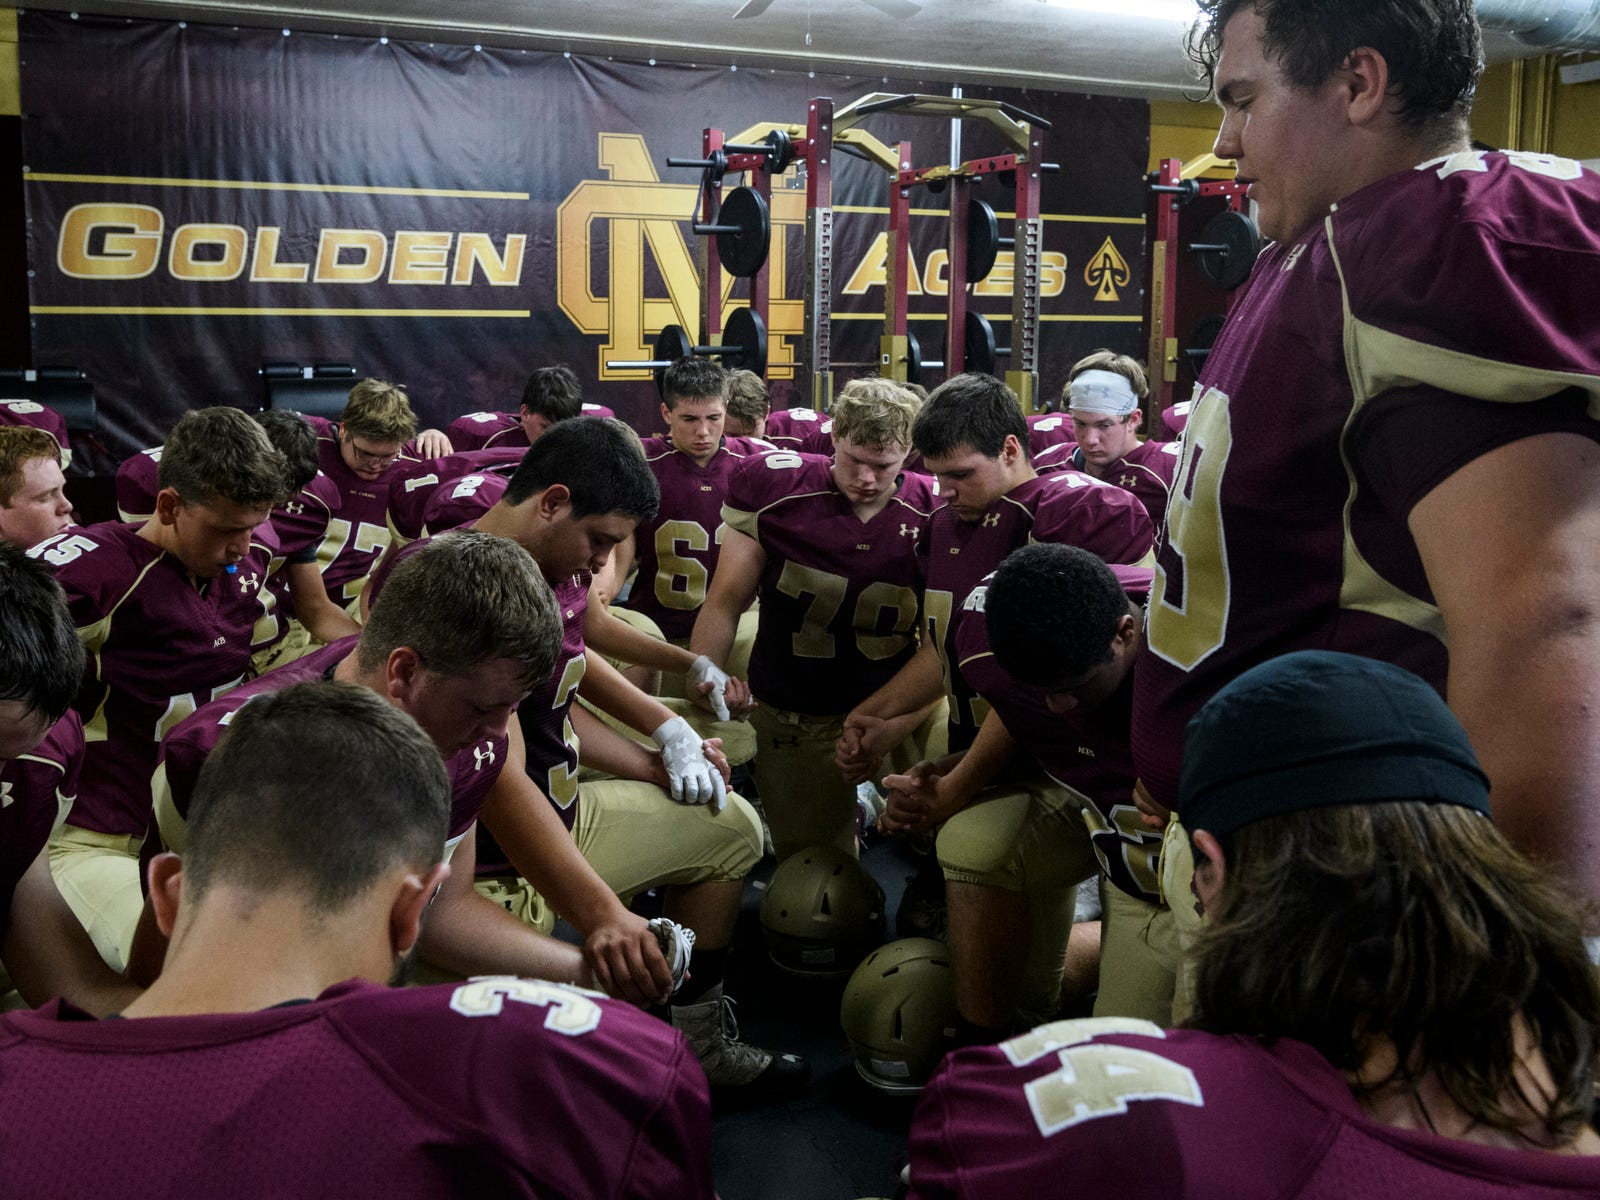 Mount Carmel's Elliot Laws (79), far right, leads a prayer before the Golden Aces take on Washington Hatchets at Riverview Stadium, known as the Snake Pit, in Mount Carmel, Ill., Friday, Sept. 21, 2018. The Golden Aces defeated the Hatchets 61-20.